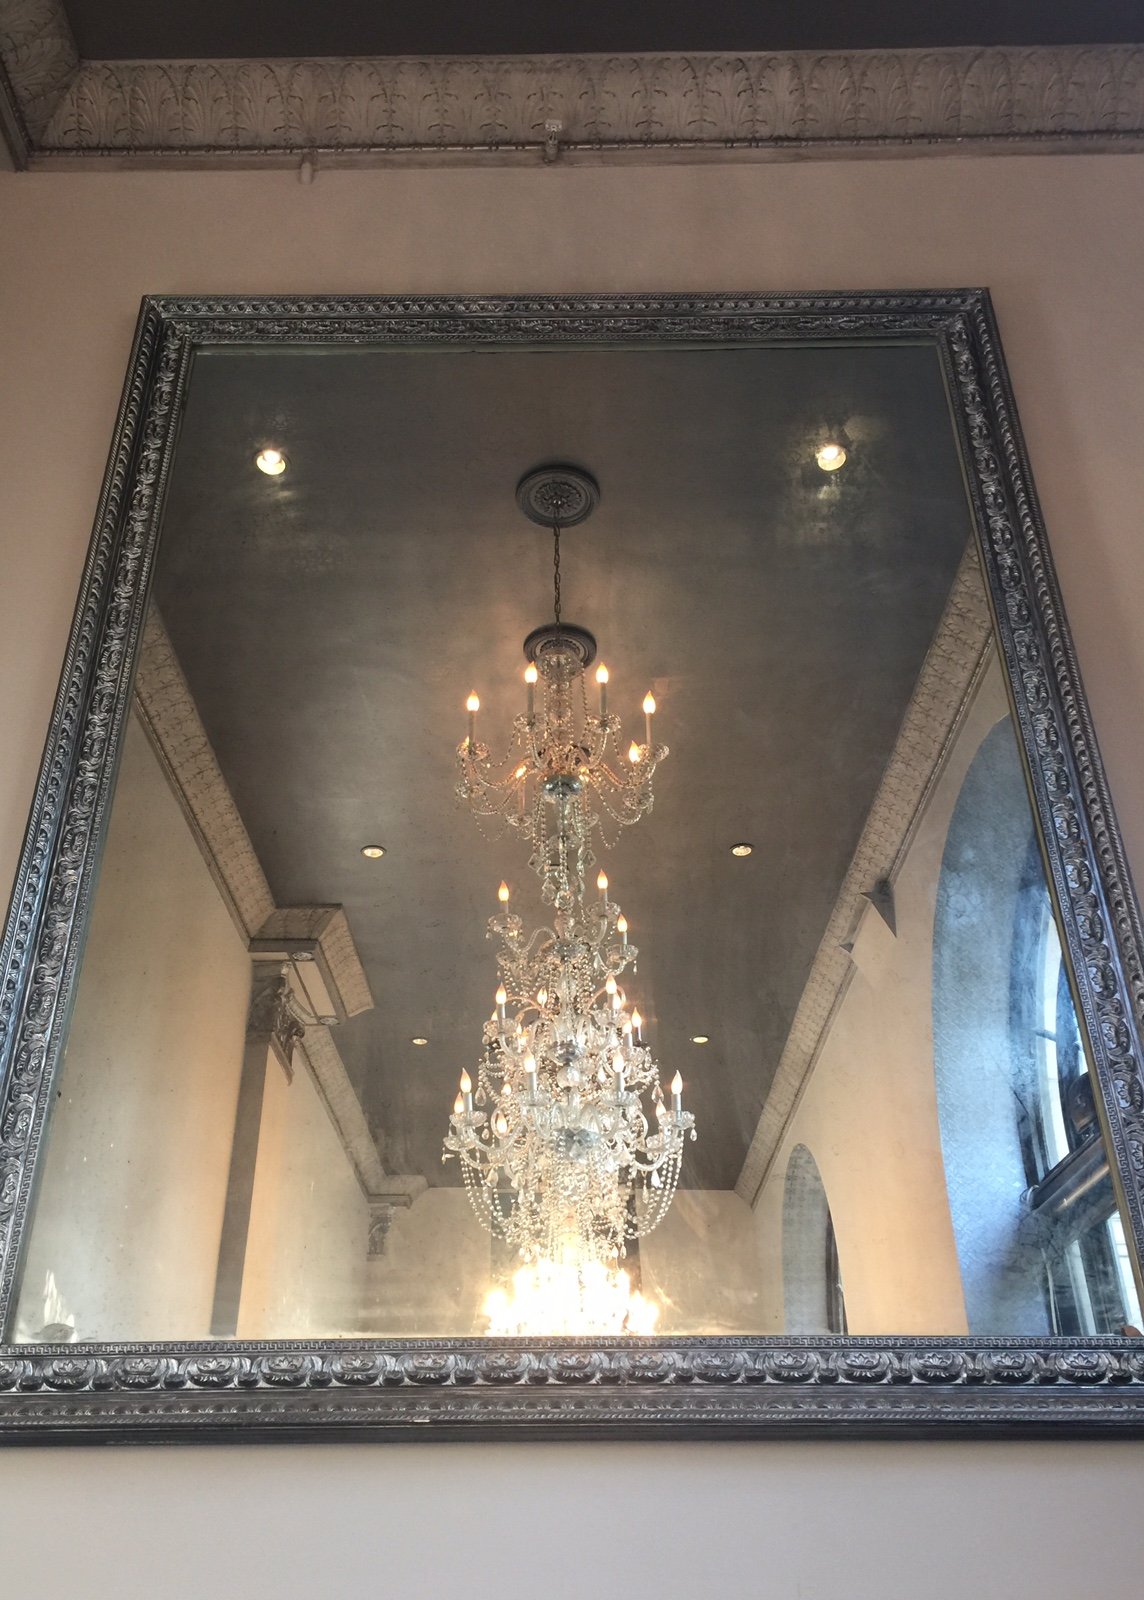 Antique mirror with chandeliers - The Culver Hotel, Los Angeles